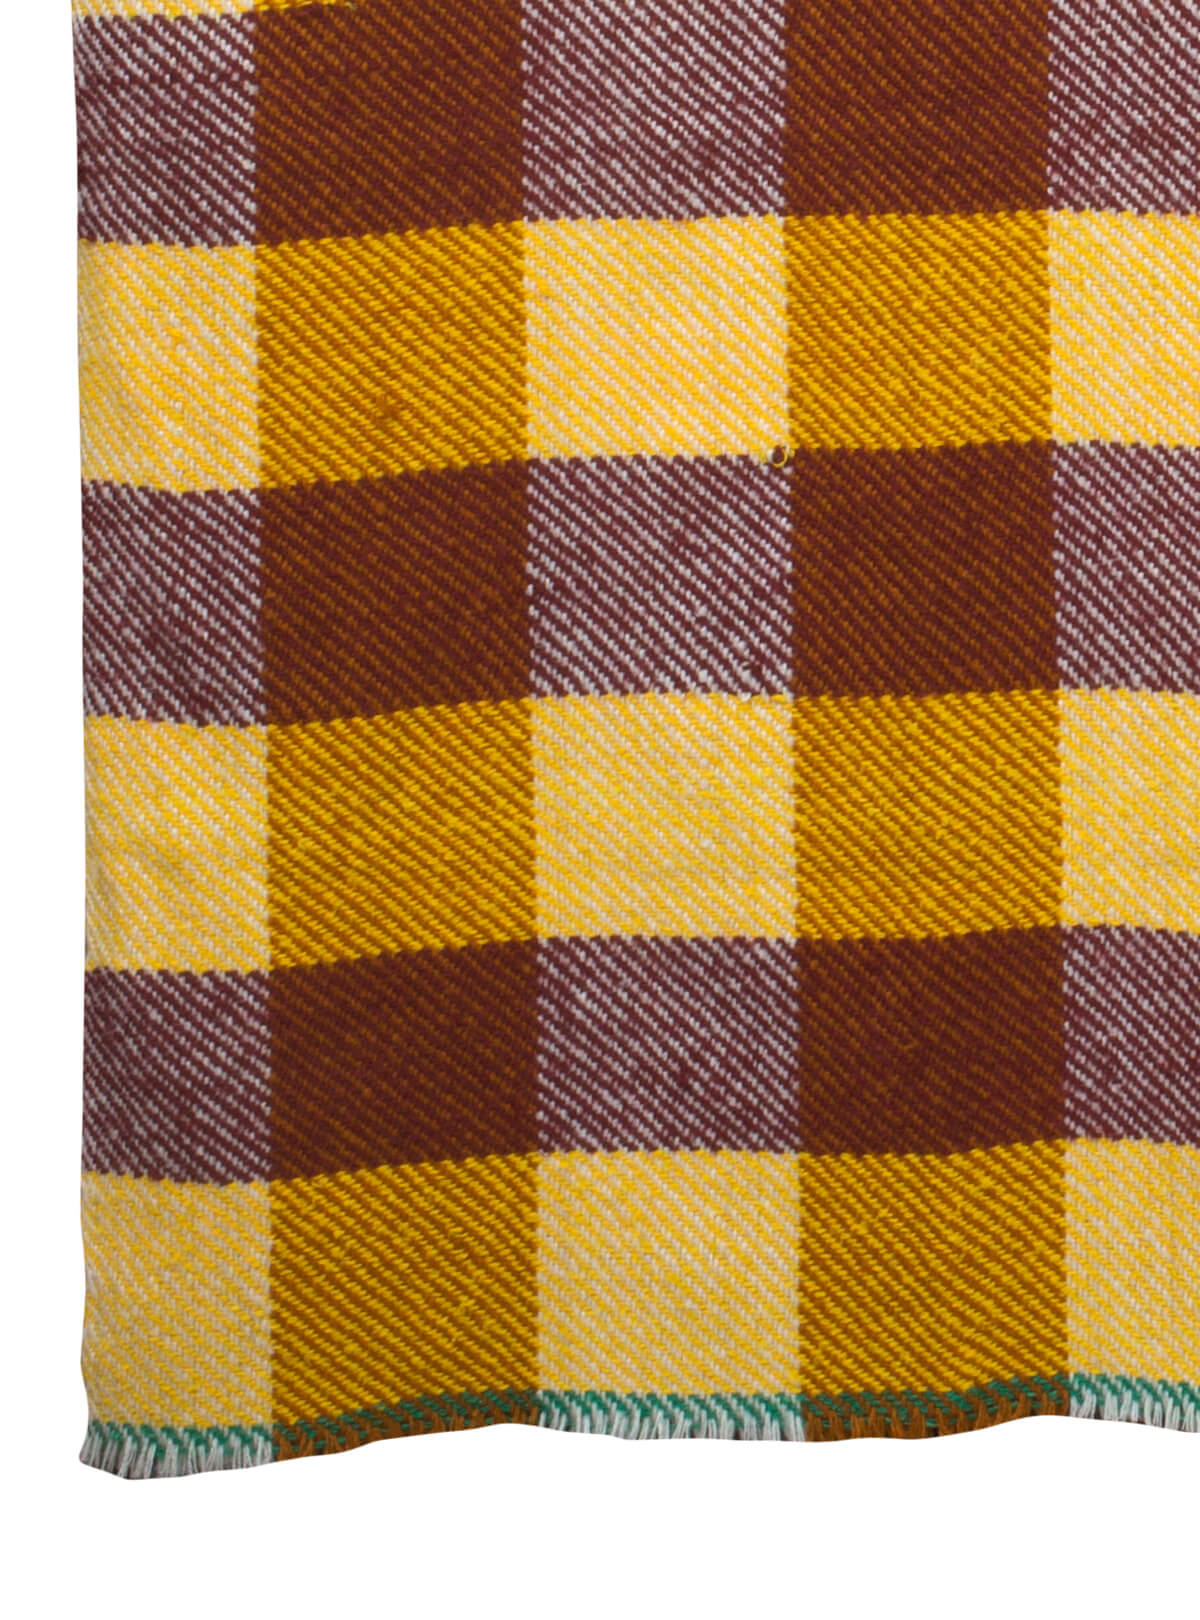 Hand Loomed Blanket Made By Recycled Fabric